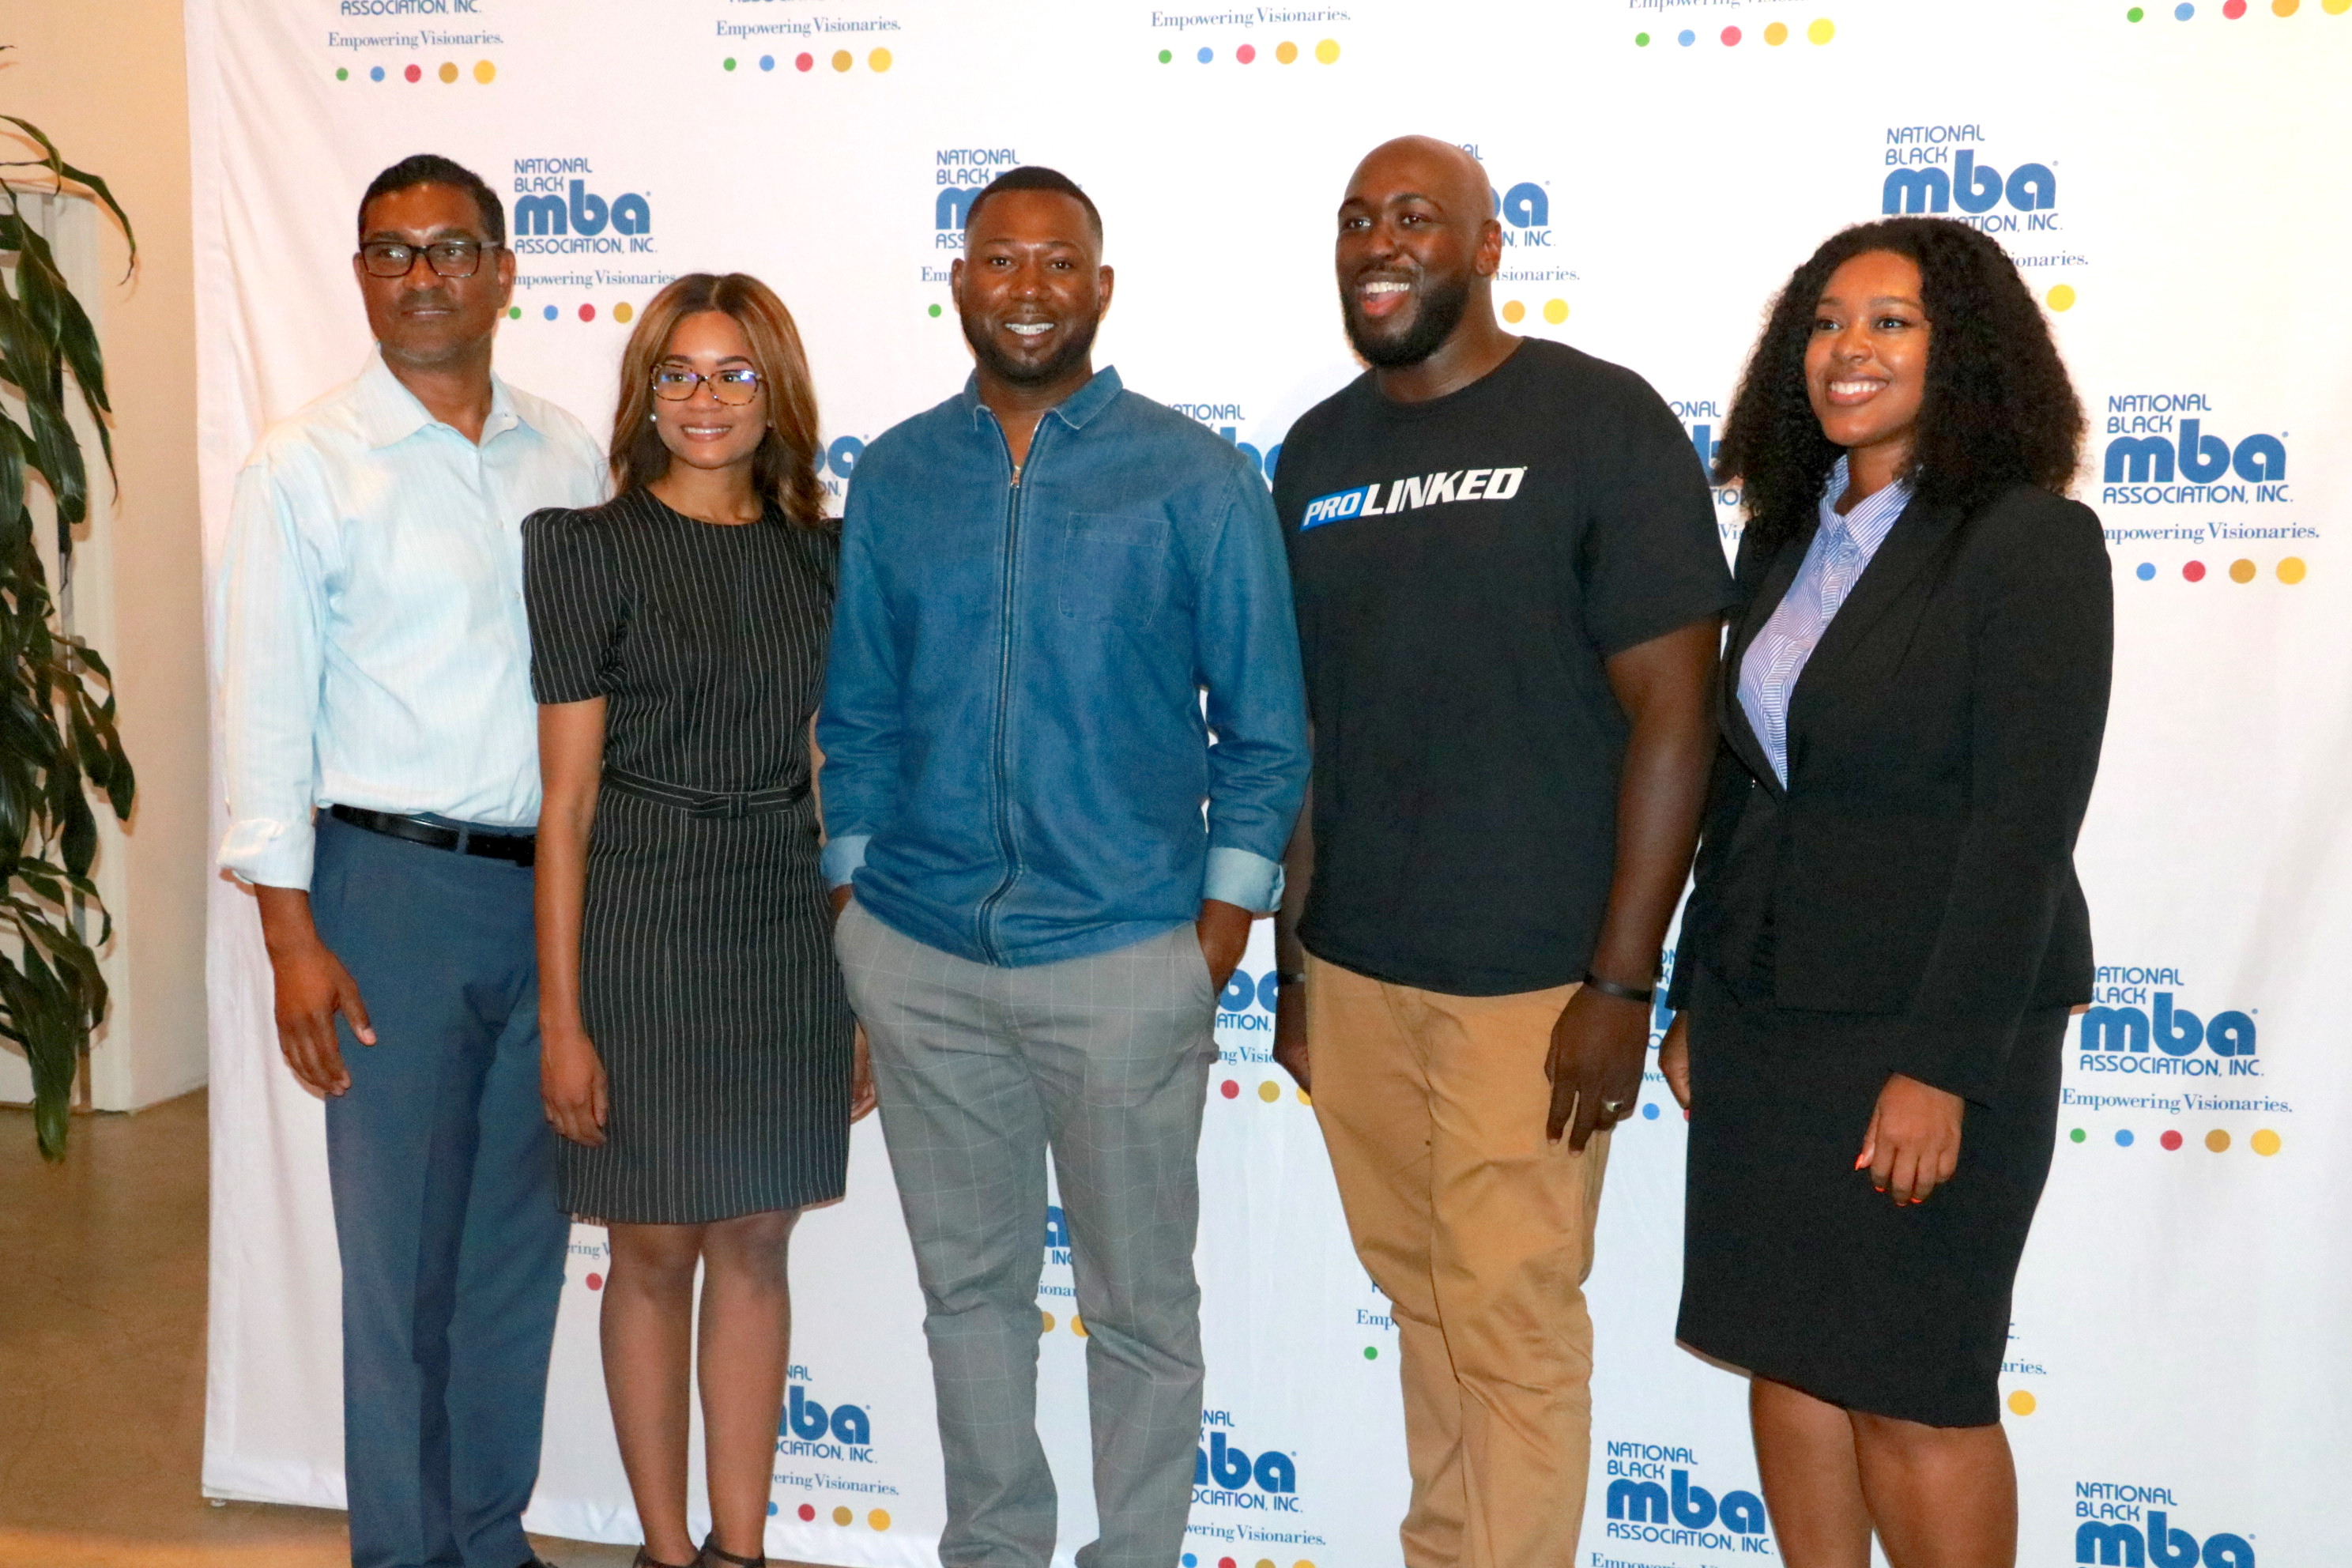 The National Black MBA Association Brought Their Scale-Up